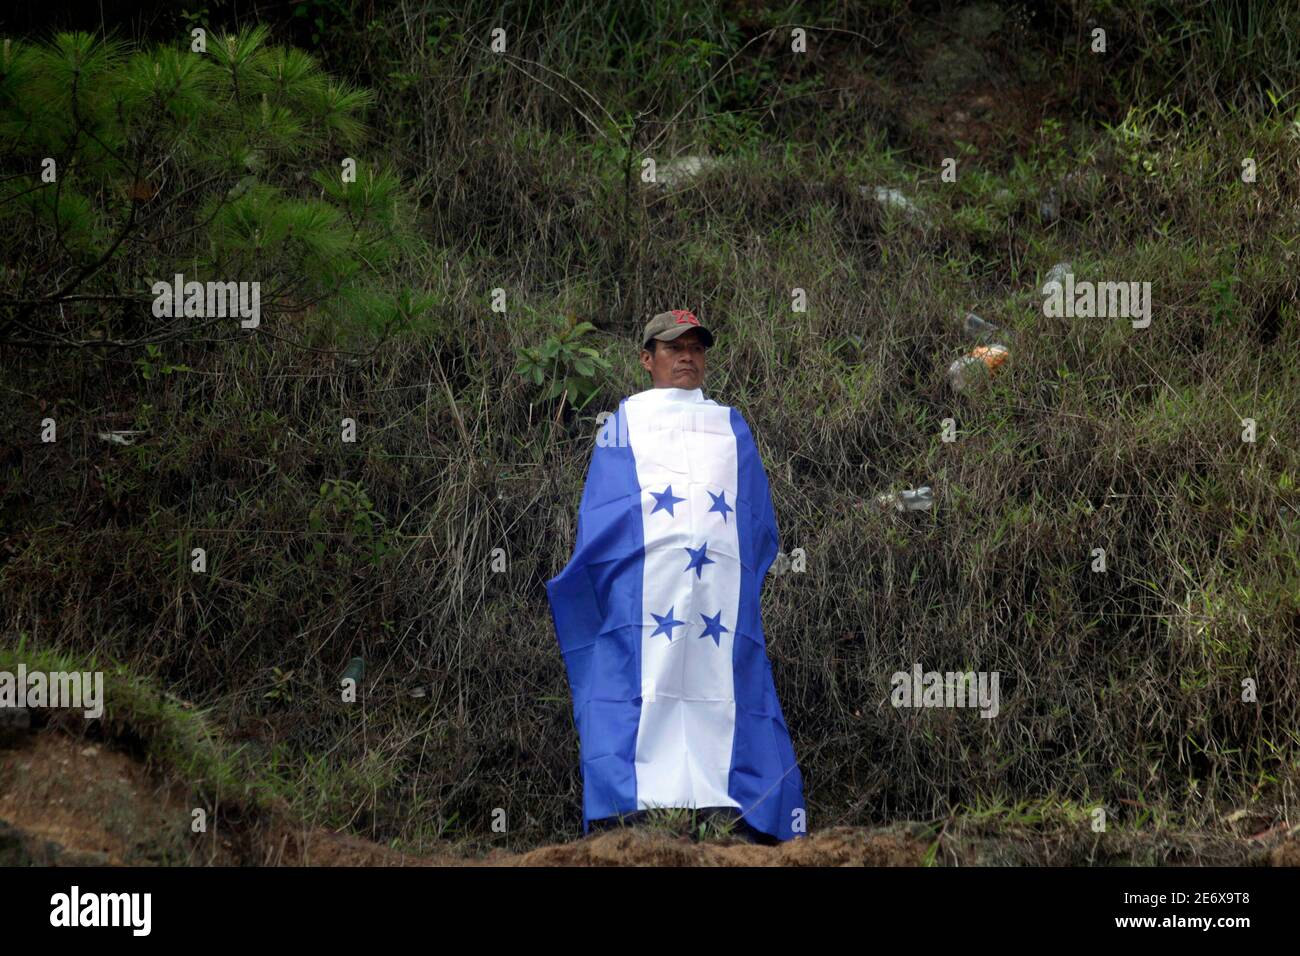 """A supporter of Honduras' ousted president Manuel Zelaya wraps himself with a Honduras flag during a protest on the outskirts of Tegucigalpa July 17, 2009. Venezuelan President Hugo Chavez said on Friday ousted Honduran President Manuel Zelaya would return to his country """"in the coming hours,"""" casting doubt on the outcome of mediation talks set for Saturday. REUTERS/Edgard Garrido (HONDURAS POLITICS) Stock Photo"""